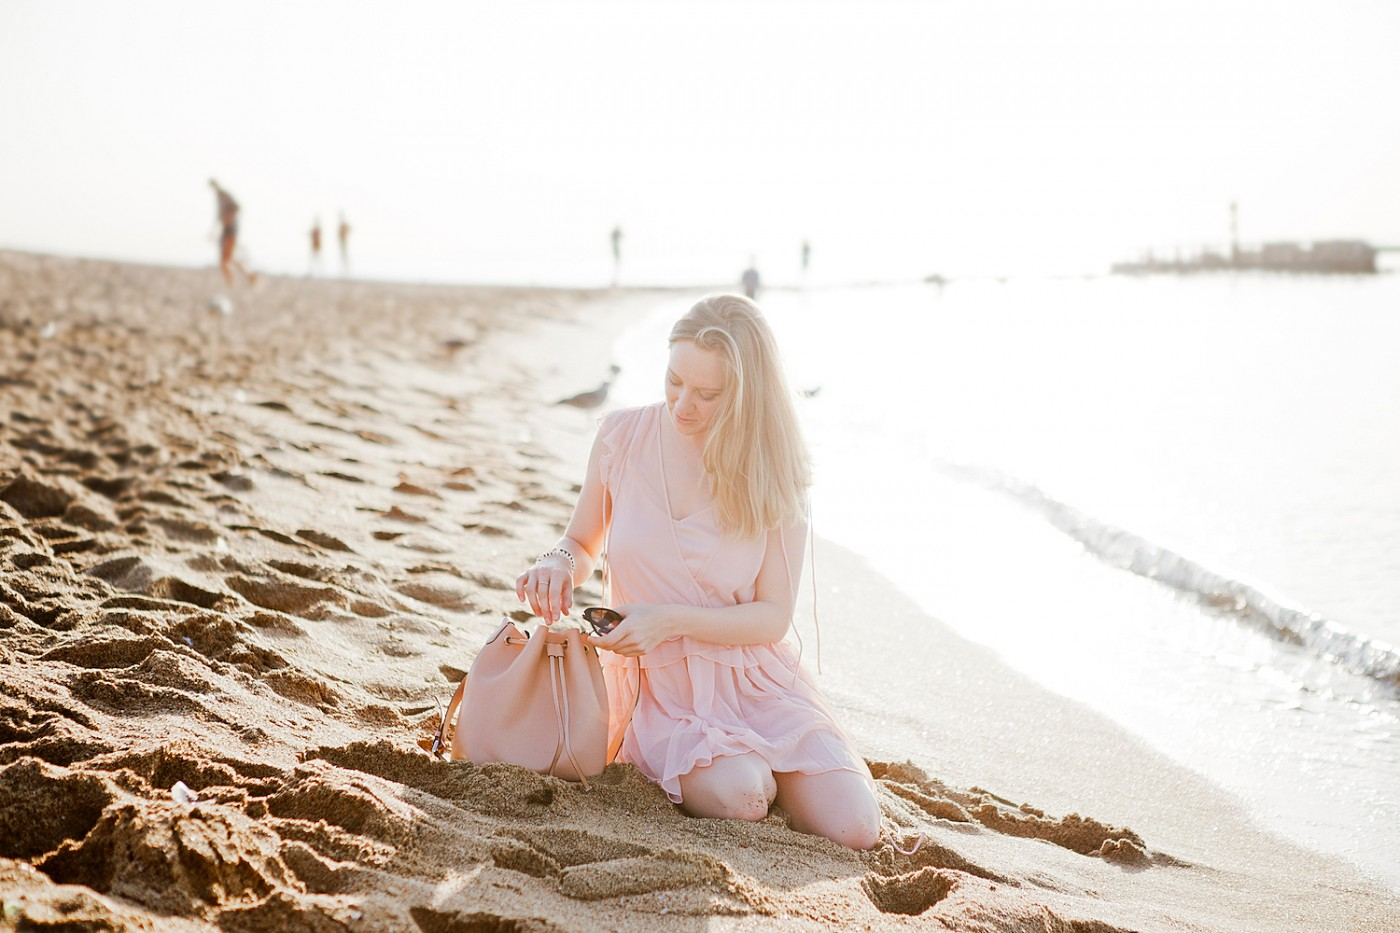 mango chiffon dress _ coccinelle bucket bag _ barceloneta beach